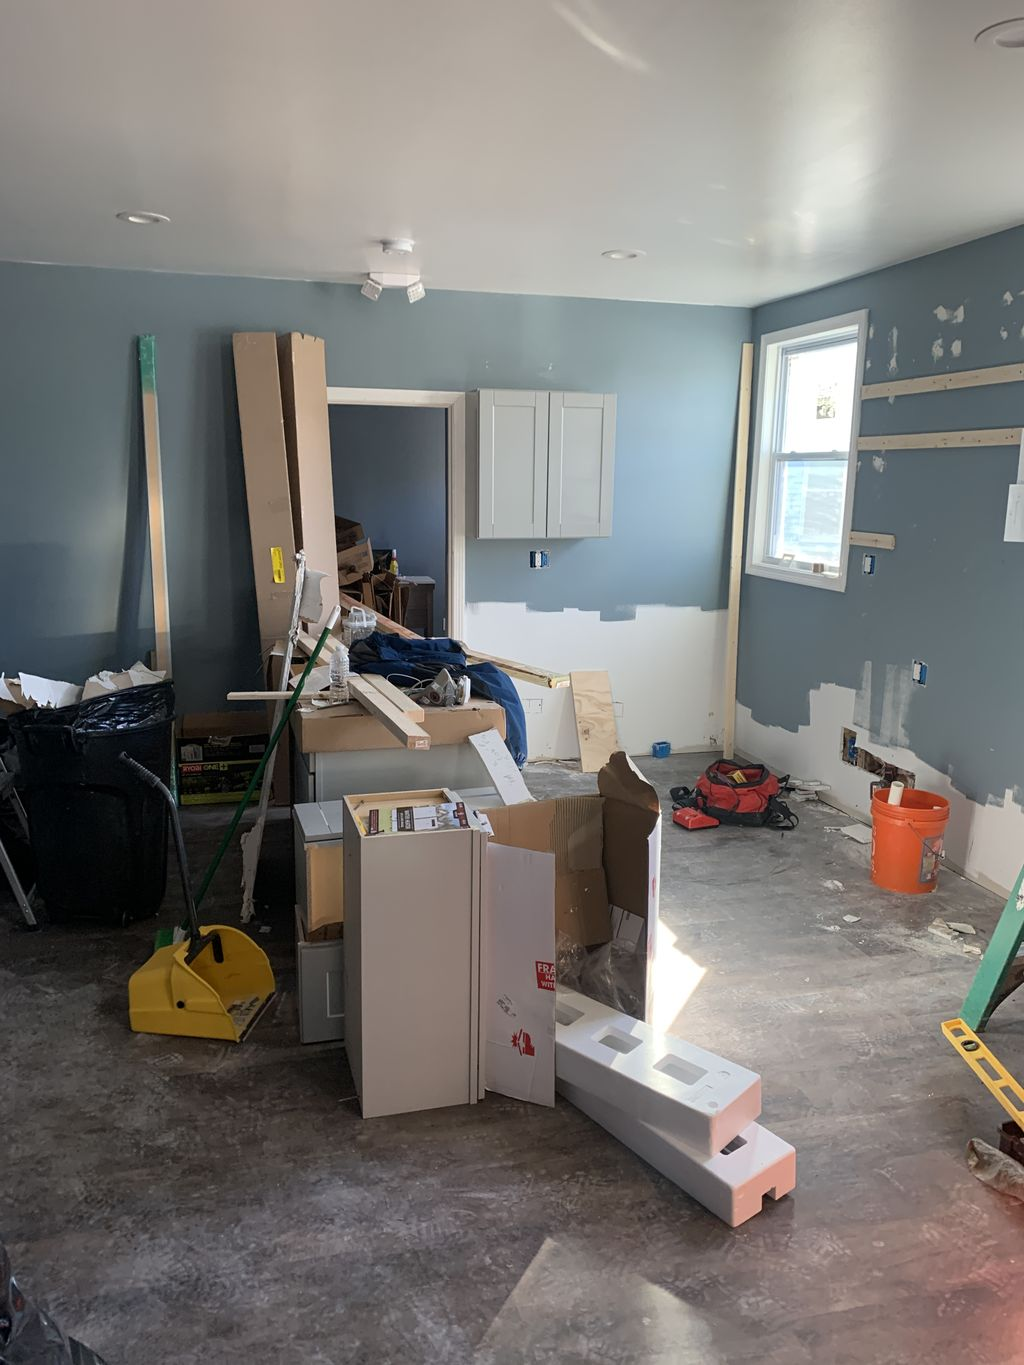 Adding kitchen and stand up shower